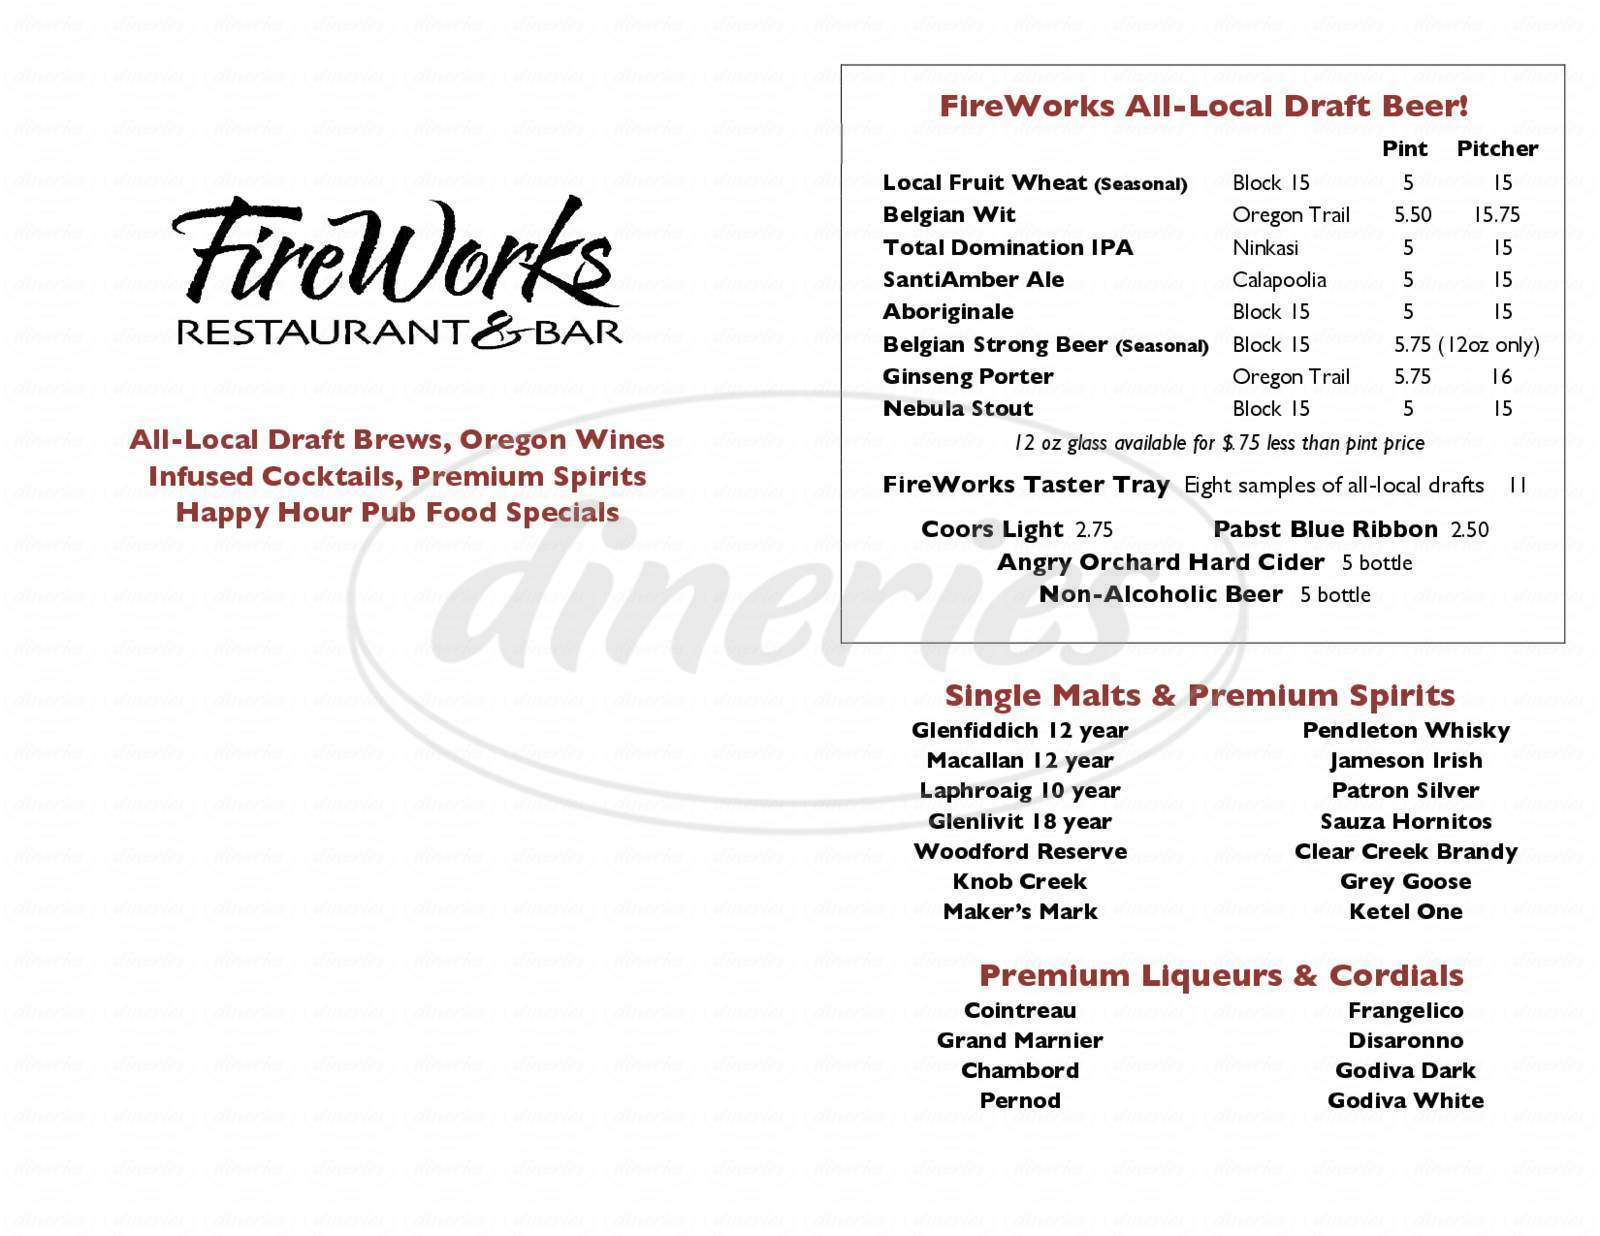 menu for FireWorks Restaurant & Catering